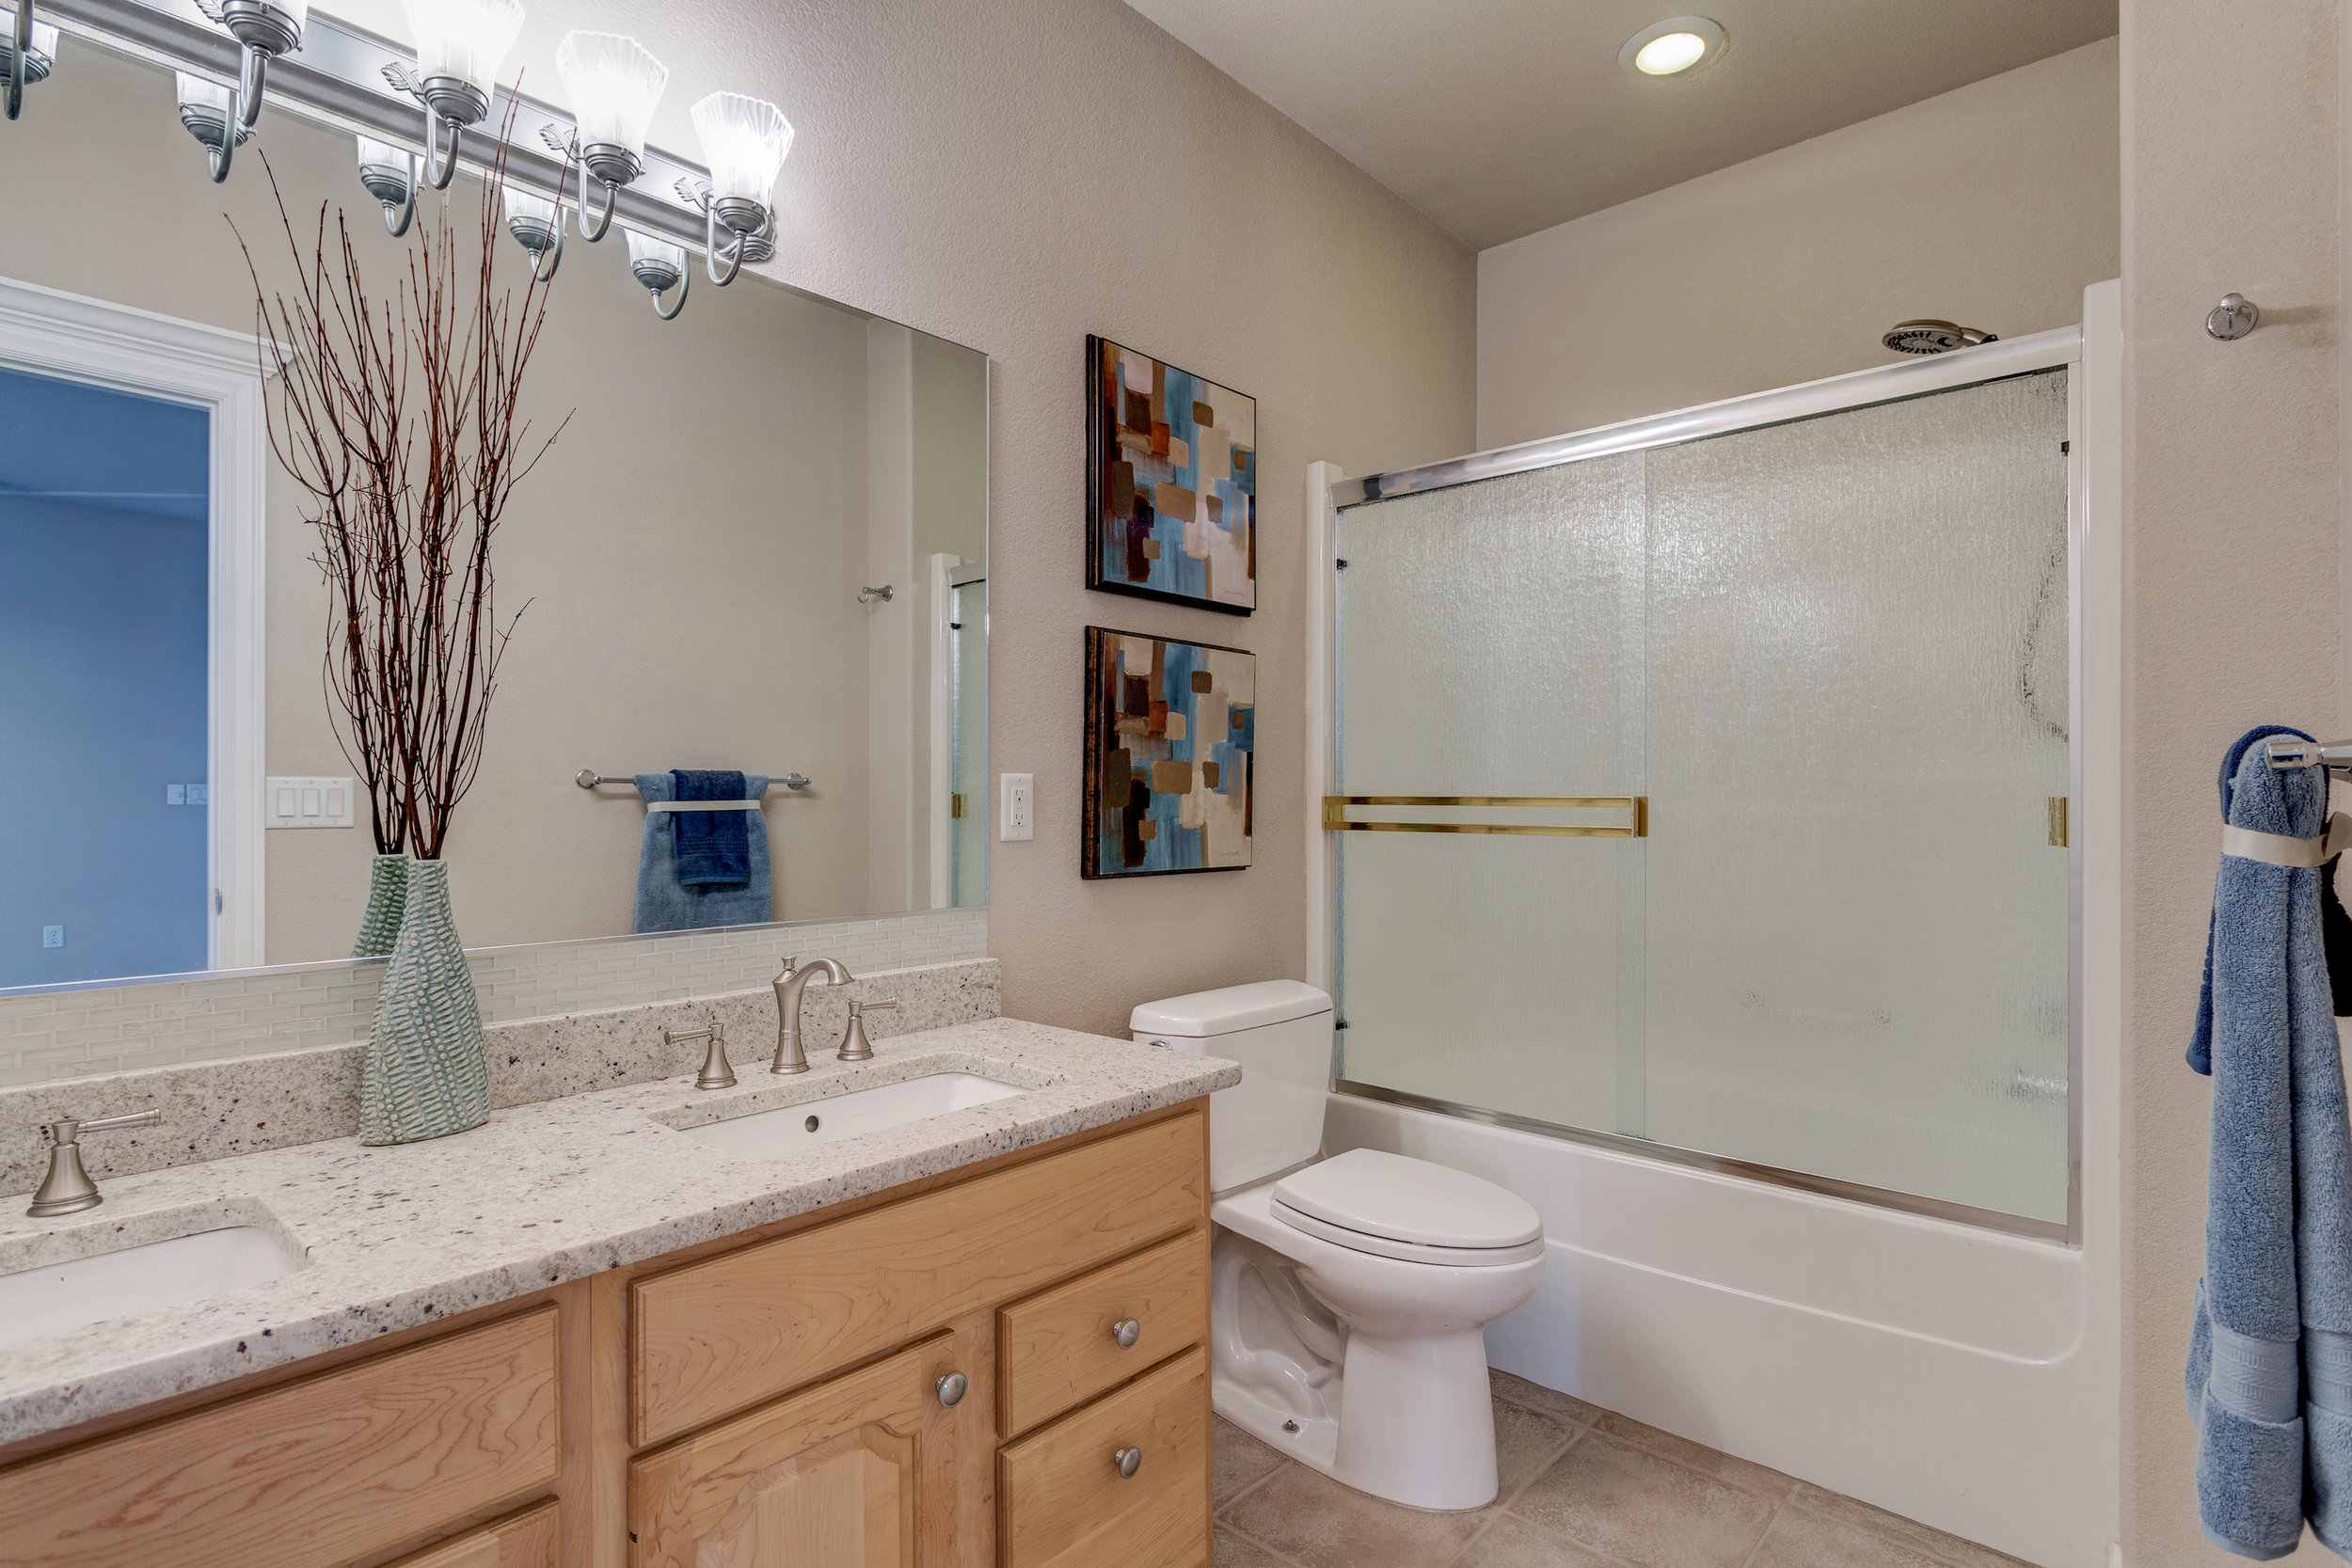 26 - Guest Bathroom.jpg